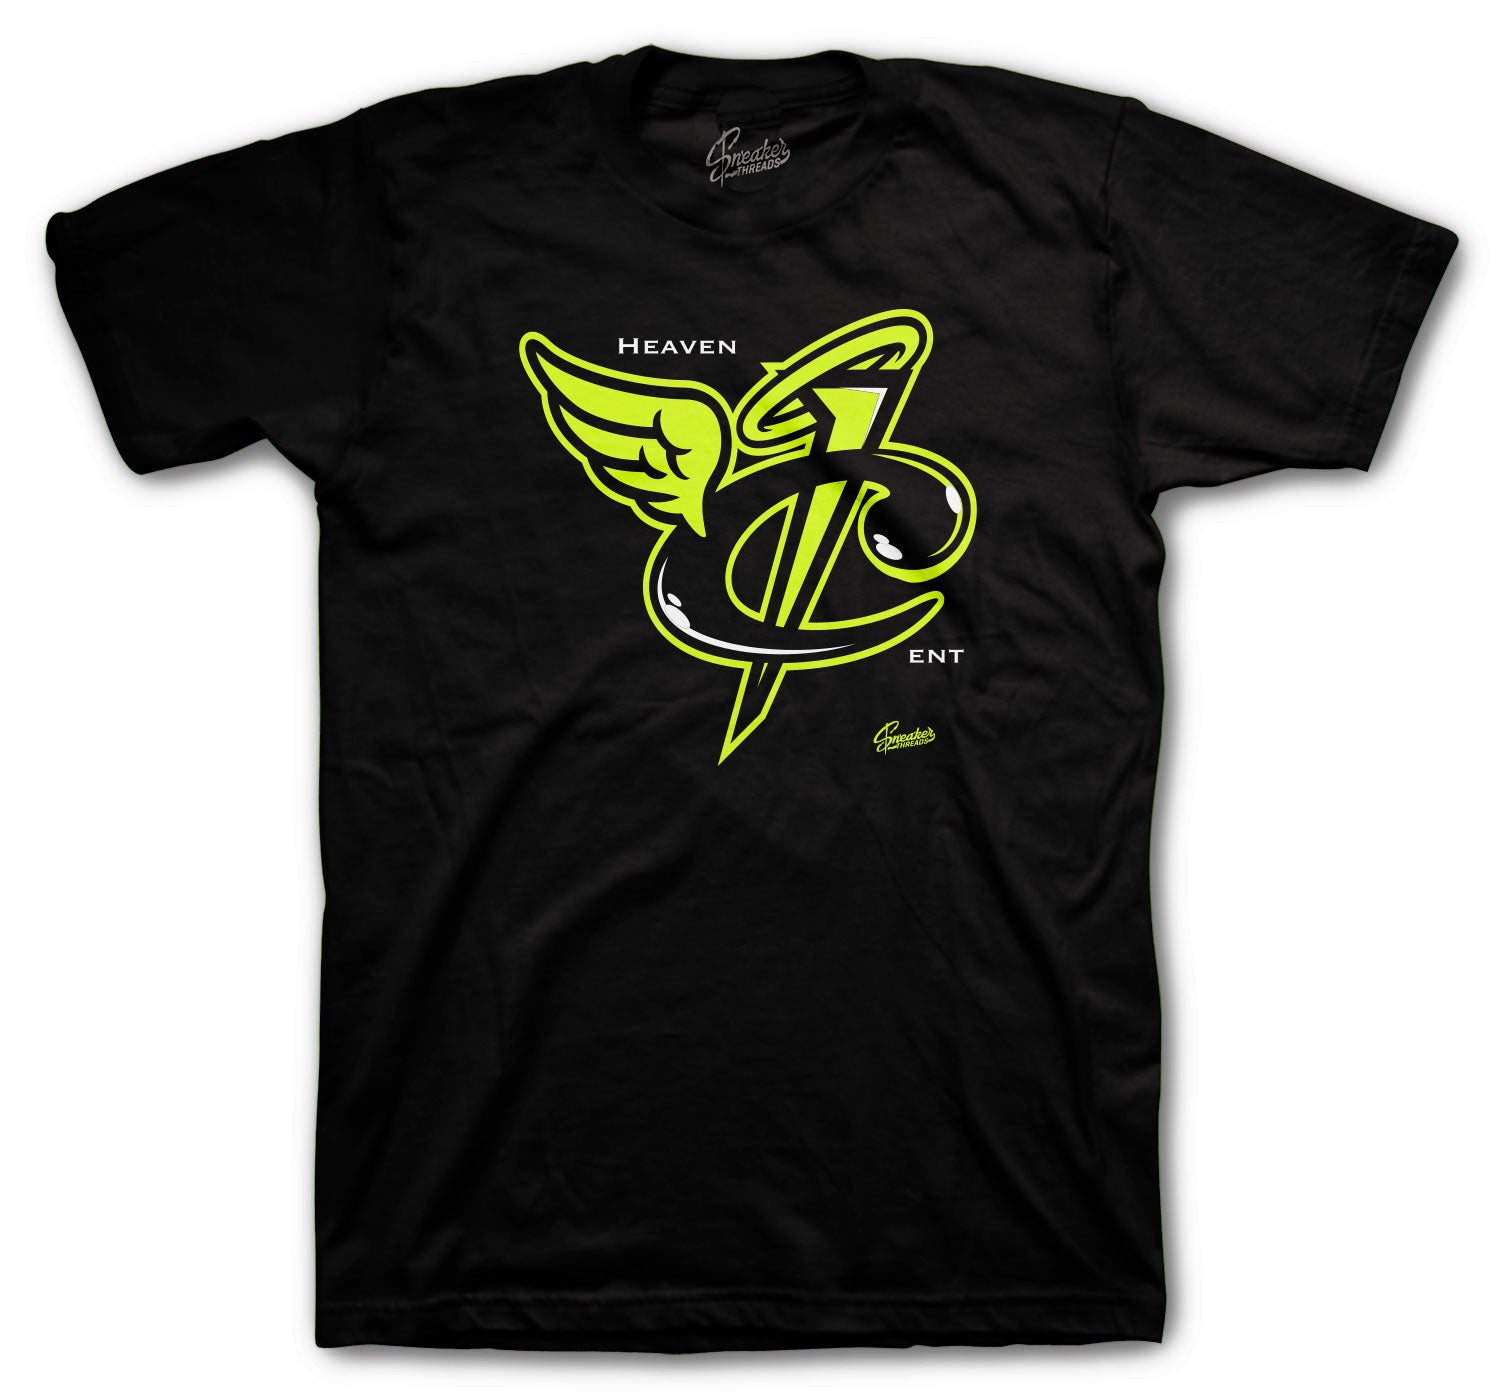 Foamposite Pro Volt Shirt - Heaven Cent - Black